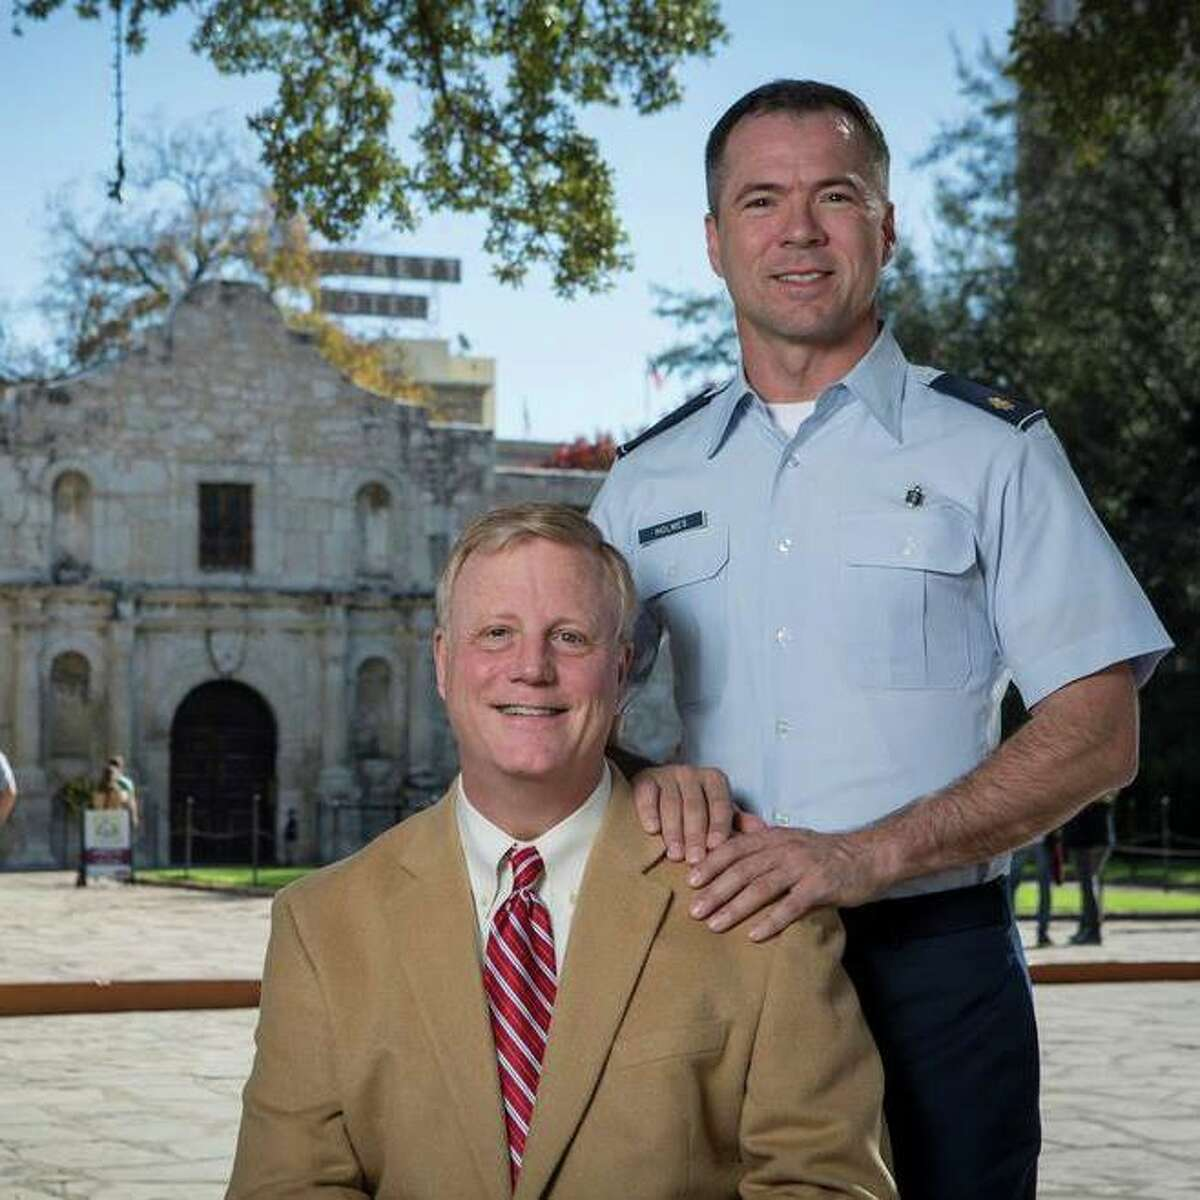 Mark Phariss and Victor Holmes, two of the four plaintiffs in the case challenging Texas' gay marriage ban, pose in front of the Alamo.